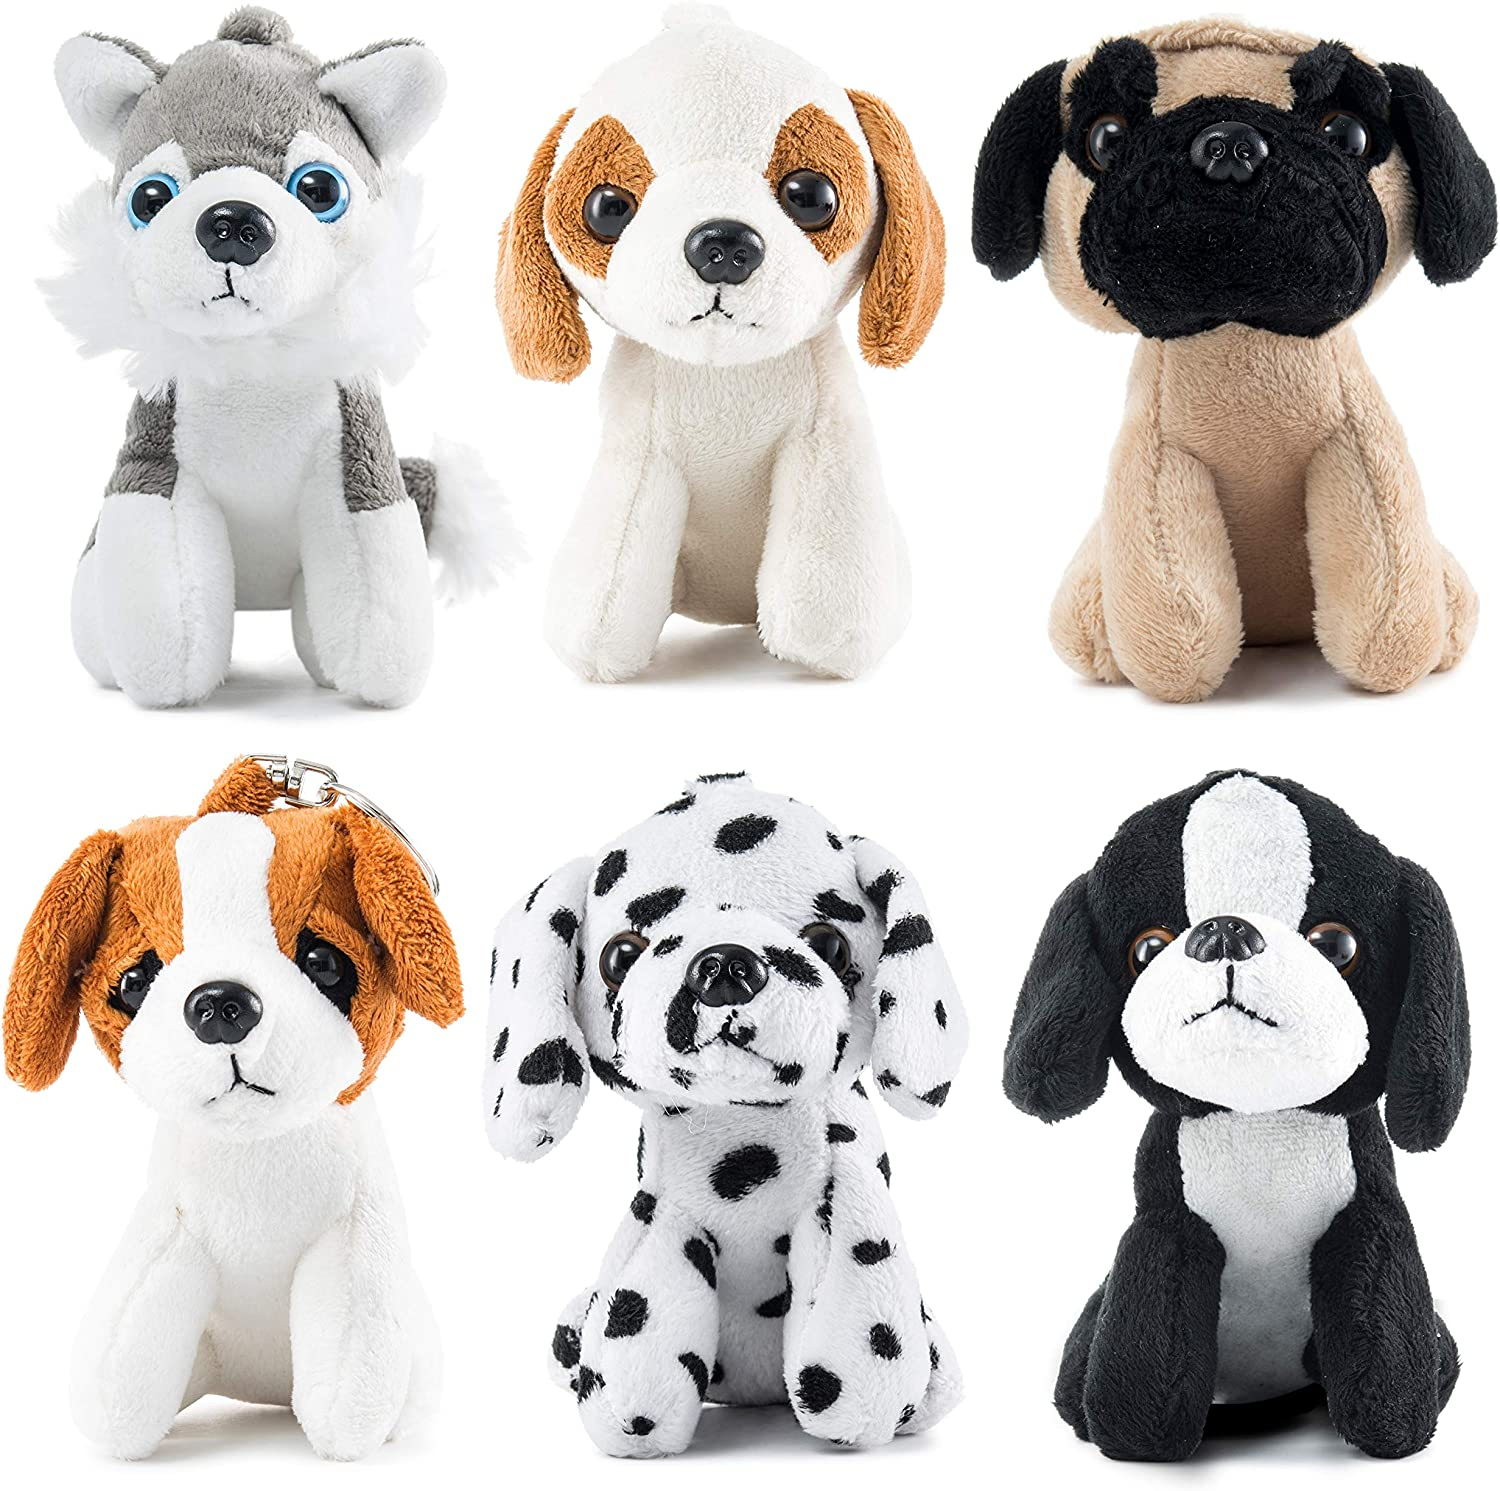 Set Of Dog Stuffed Animals, Amazon Com Prextex Plush Puppies Set Of 6 Realistic Looking 5 Inch Cute And Cozy Stuffed Animals Little Plush Dogs With Keychain Toys Games